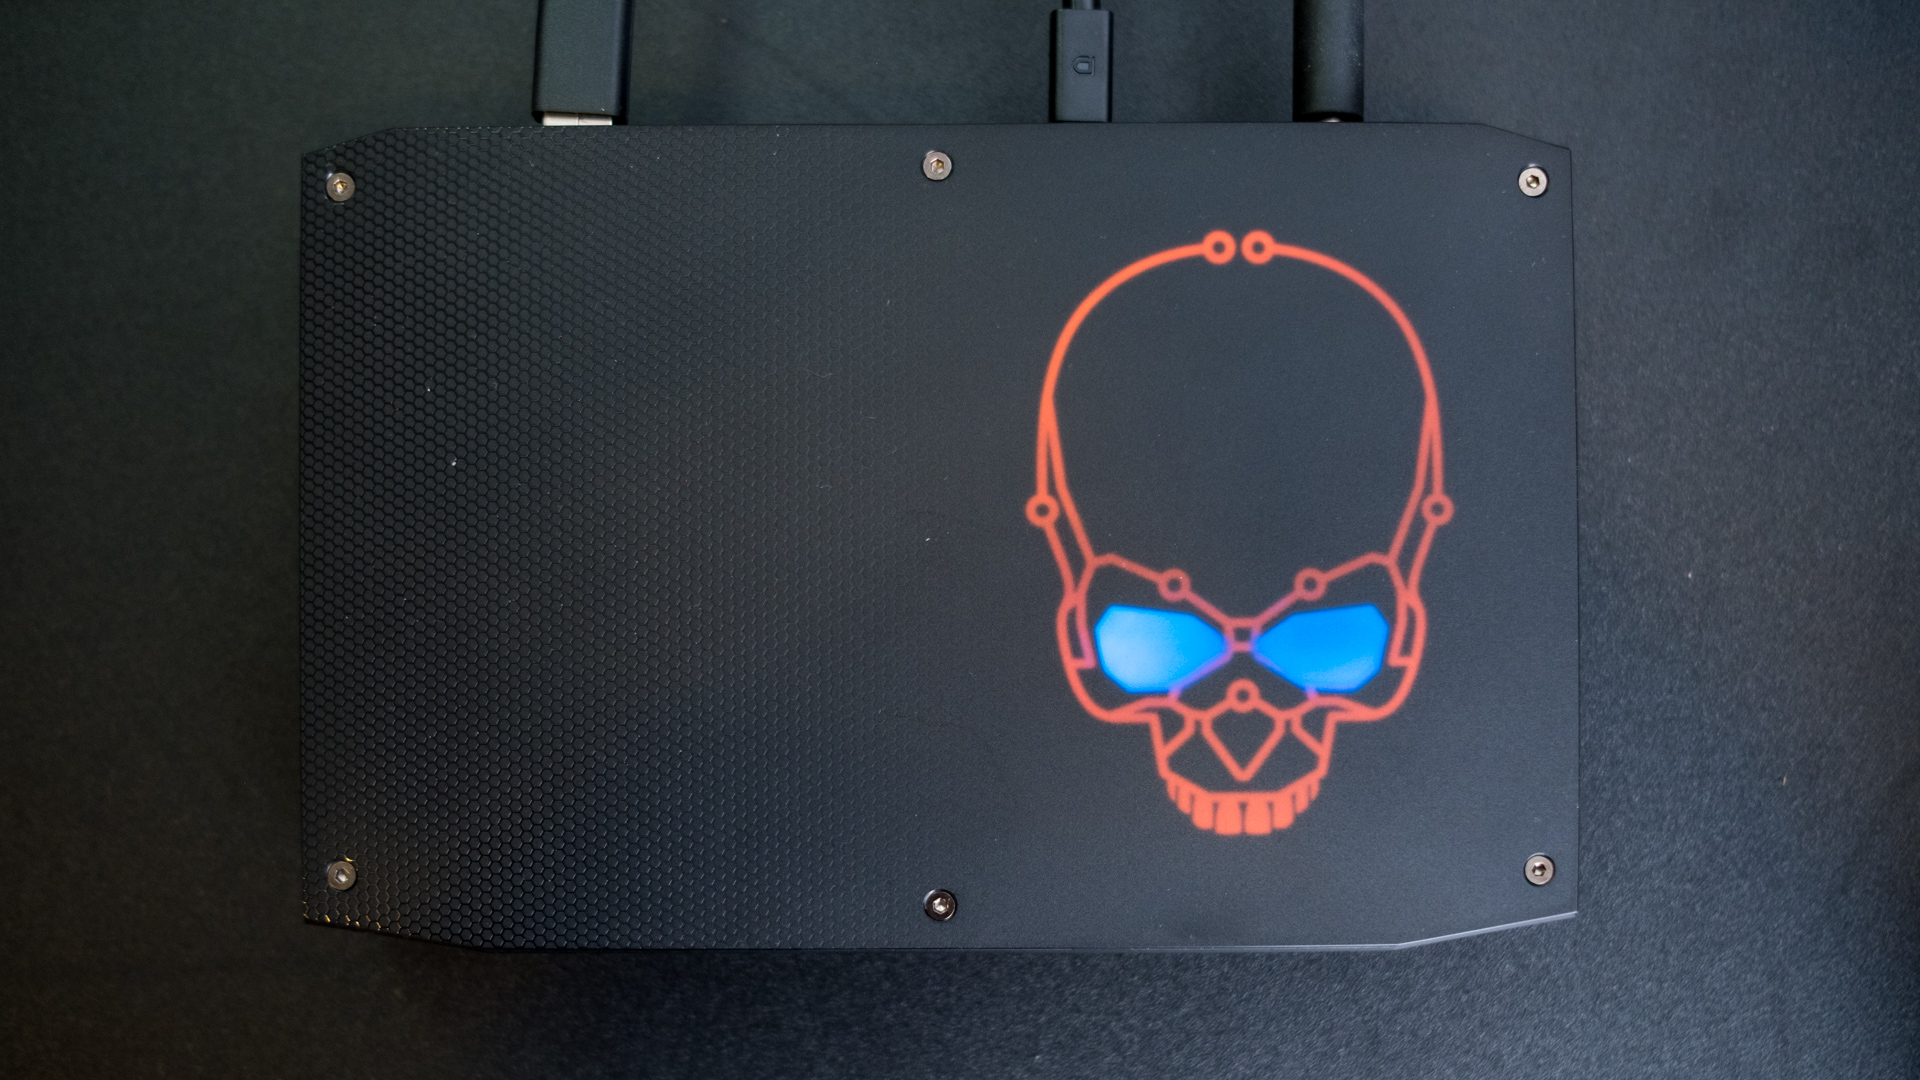 Intel Hades Canyon NUC - myOurReview